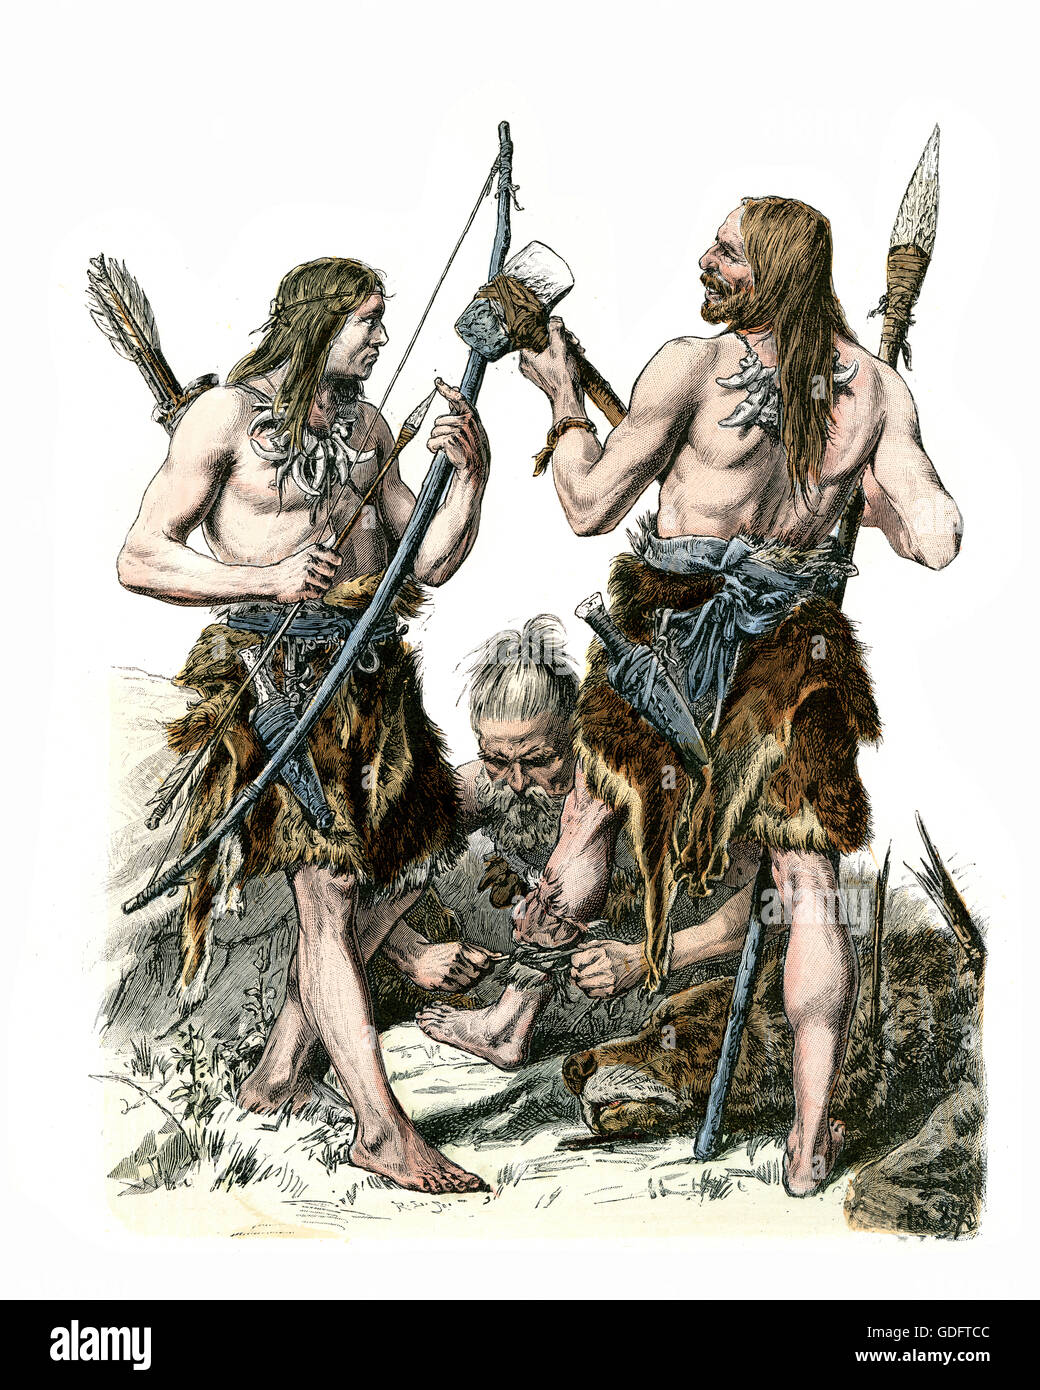 Fashions of the Stone Age, German hunters wearing animal skins with stone axe and spear - Stock Image